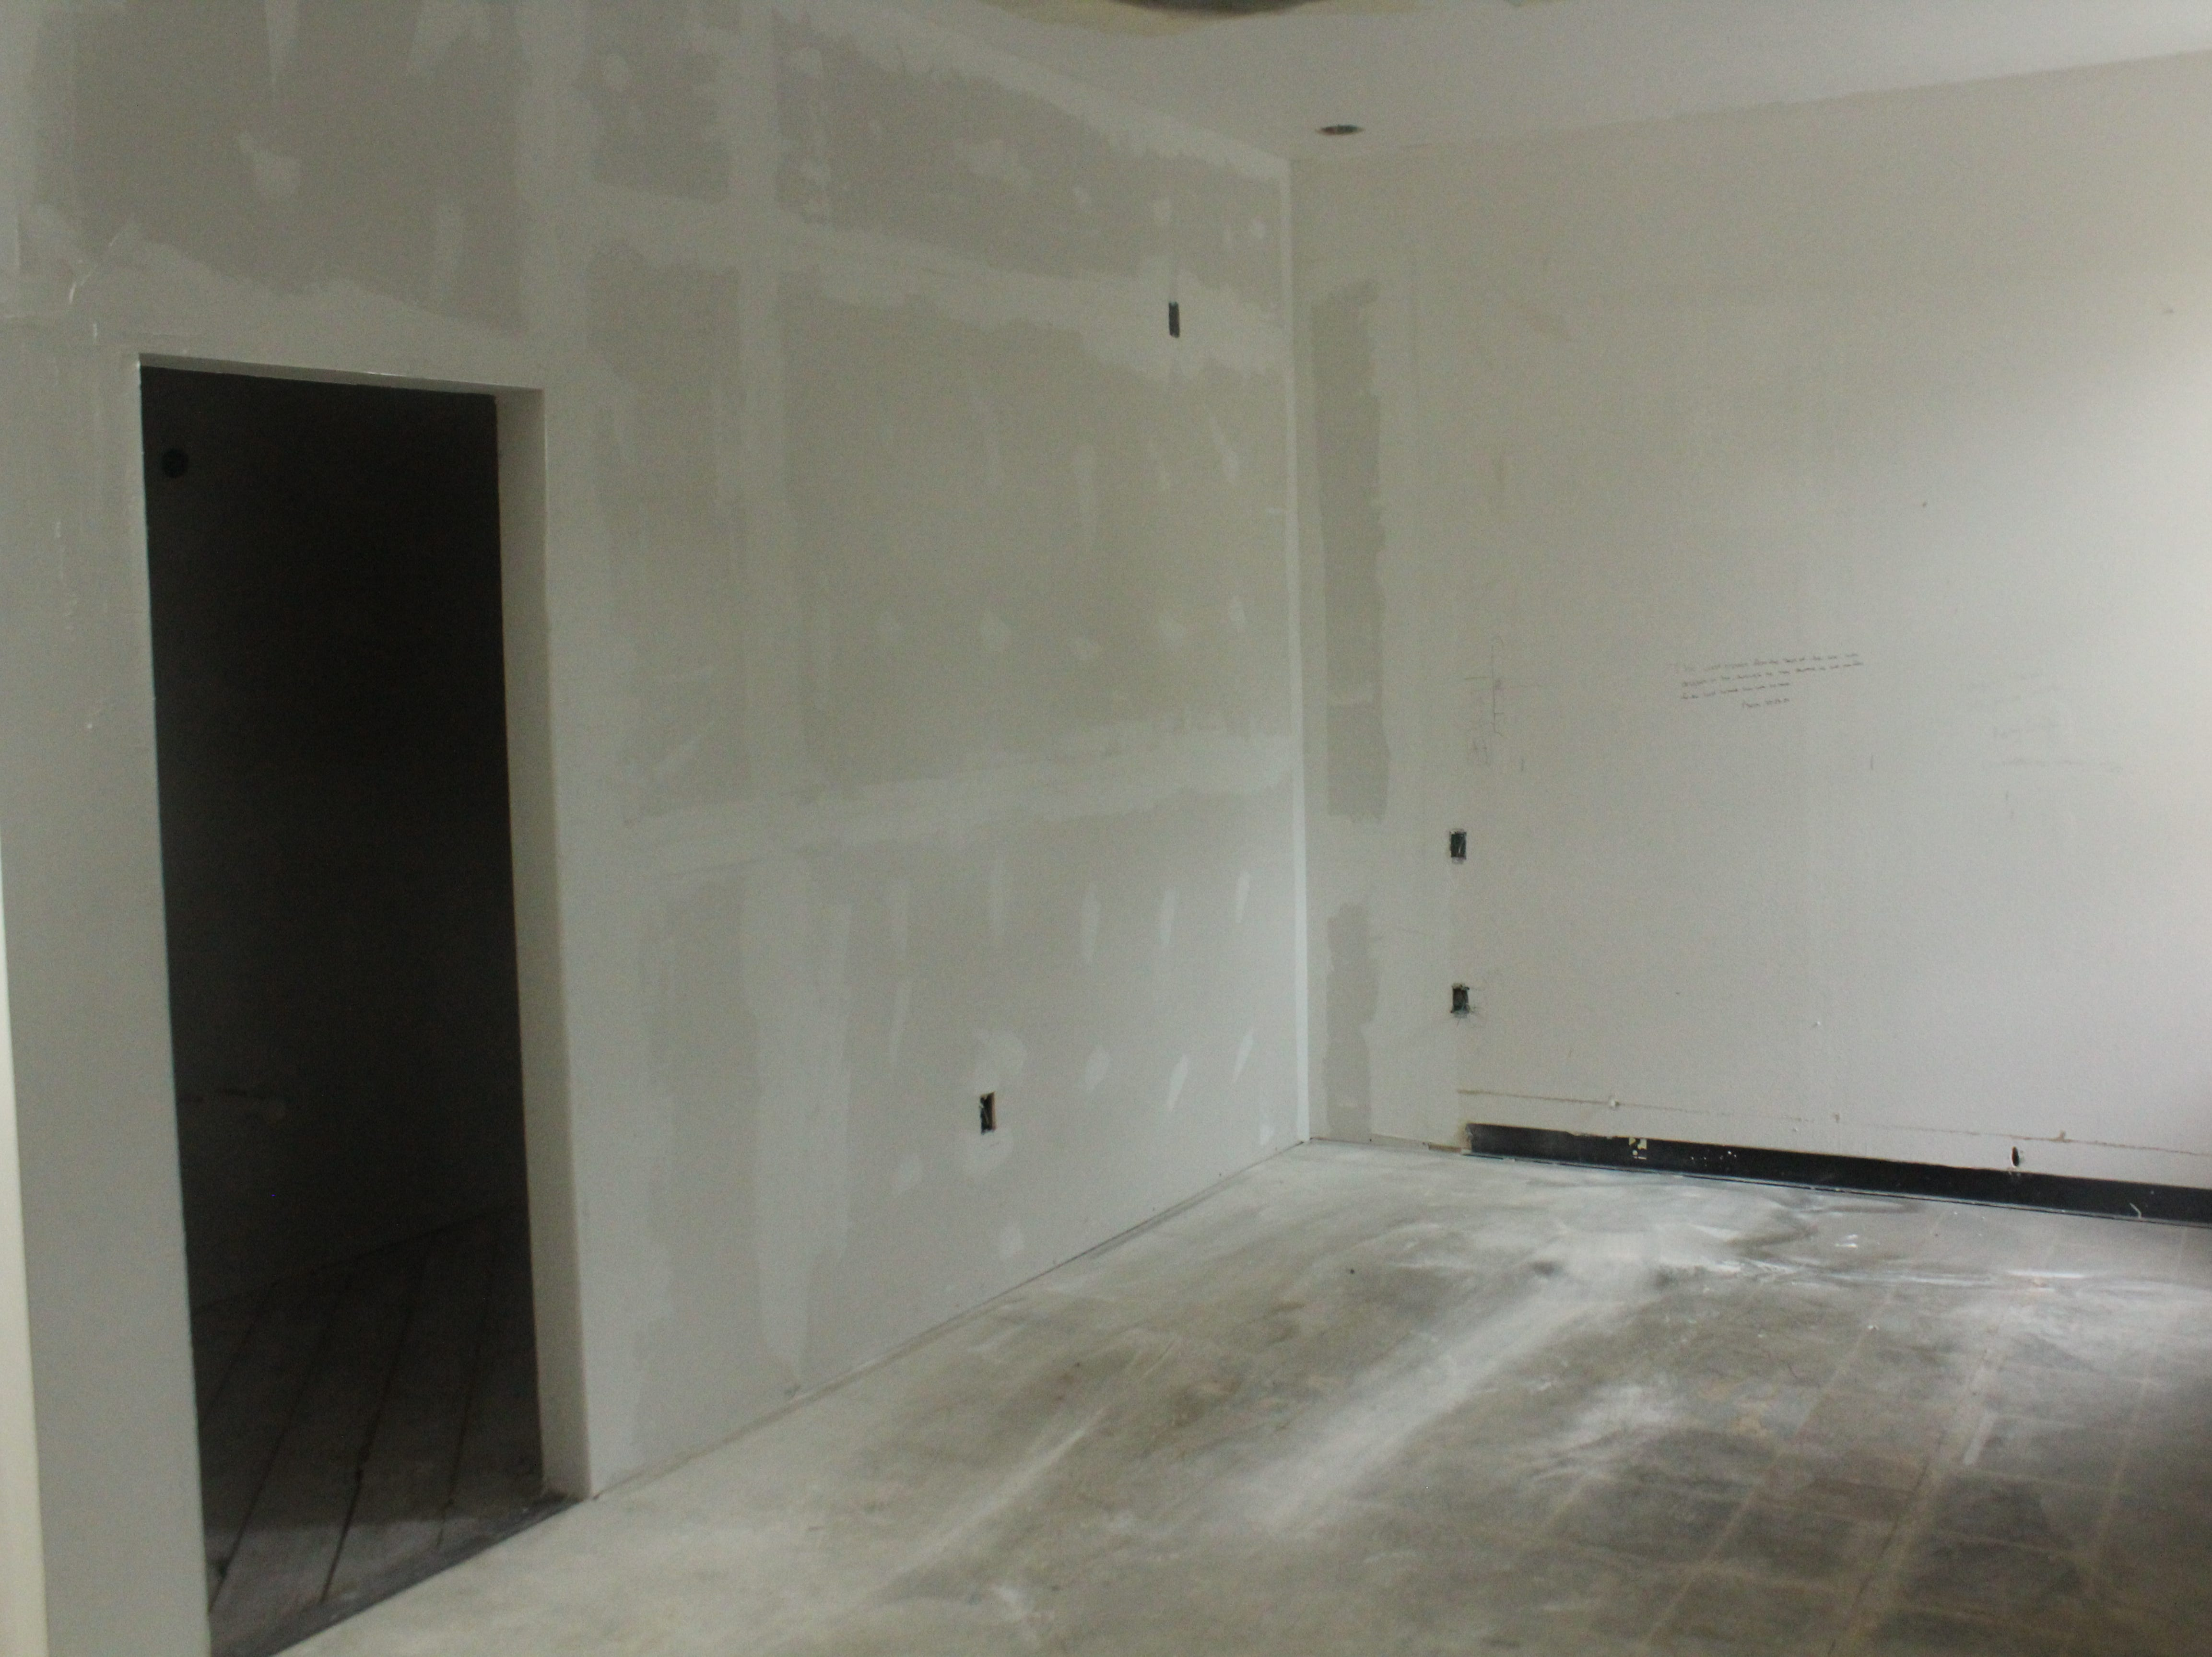 One of the four rooms being constructed at Old Central Firehouse Bed and Brew, 200 S. Magdalen St.